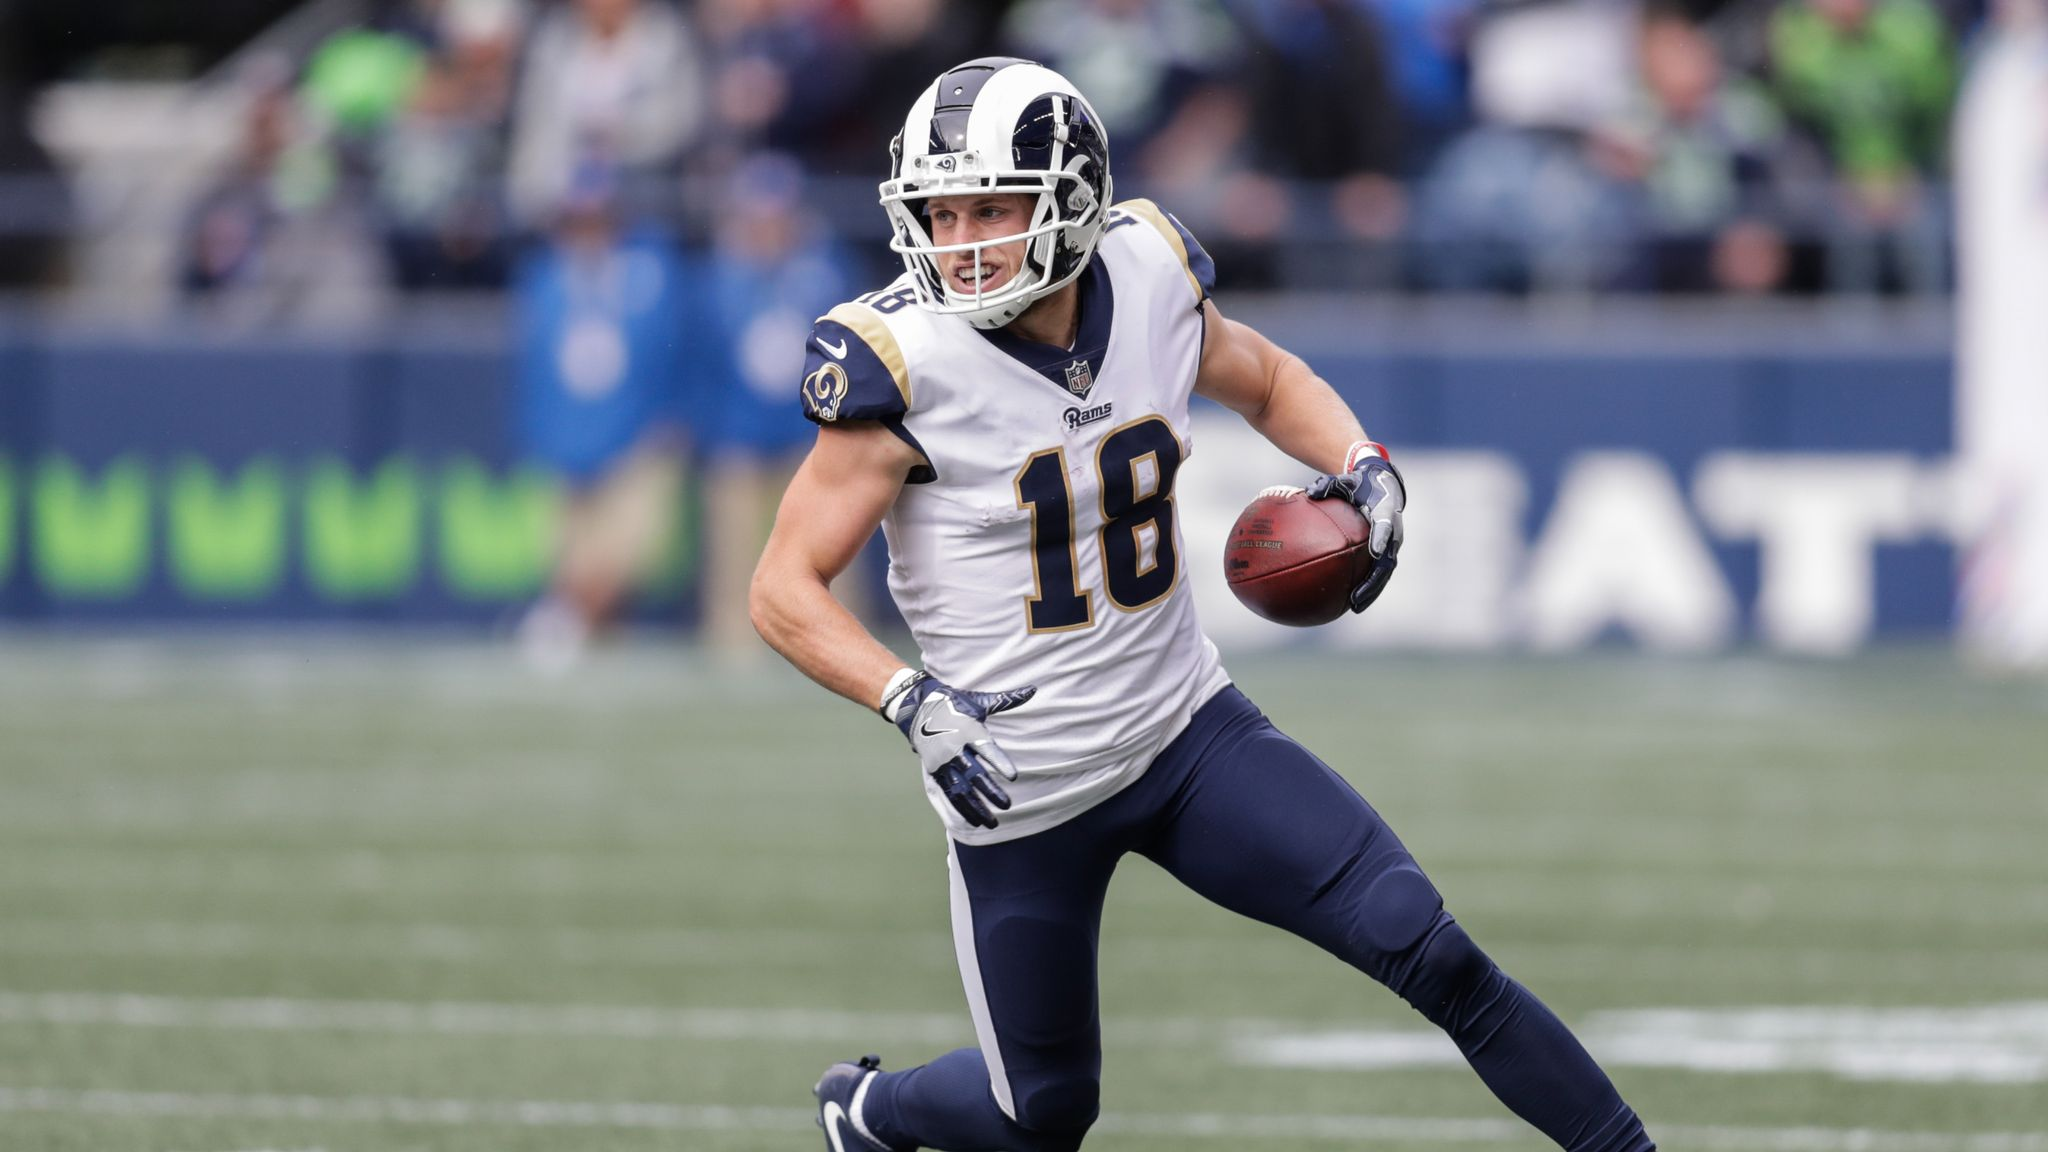 La Rams Cooper Kupp Out For Season With Torn Acl Nfl News Sky Sports